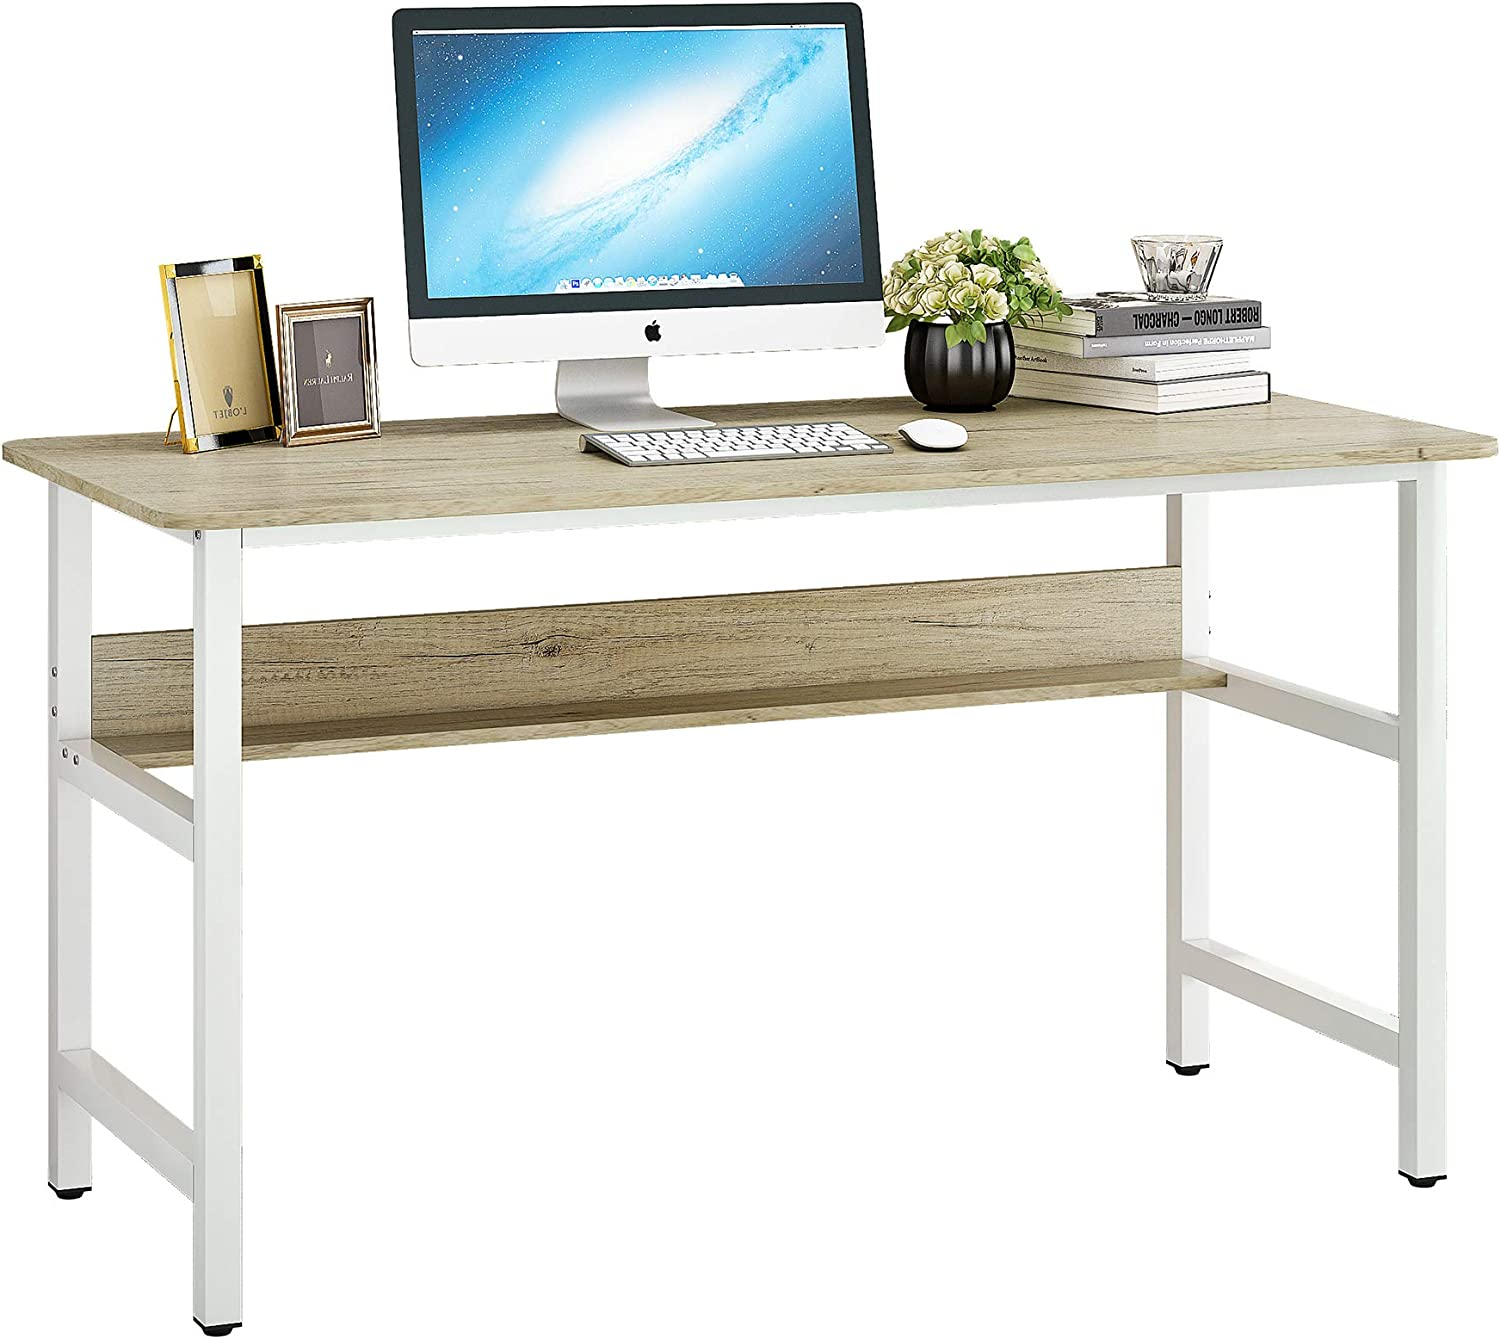 JEROAL 55 Inch Computer Desk with Bookshelf, Wood PC Laptop Workstation, Study Writing Table with Metal Framefor Home, Office and Study Room,Colorado Color